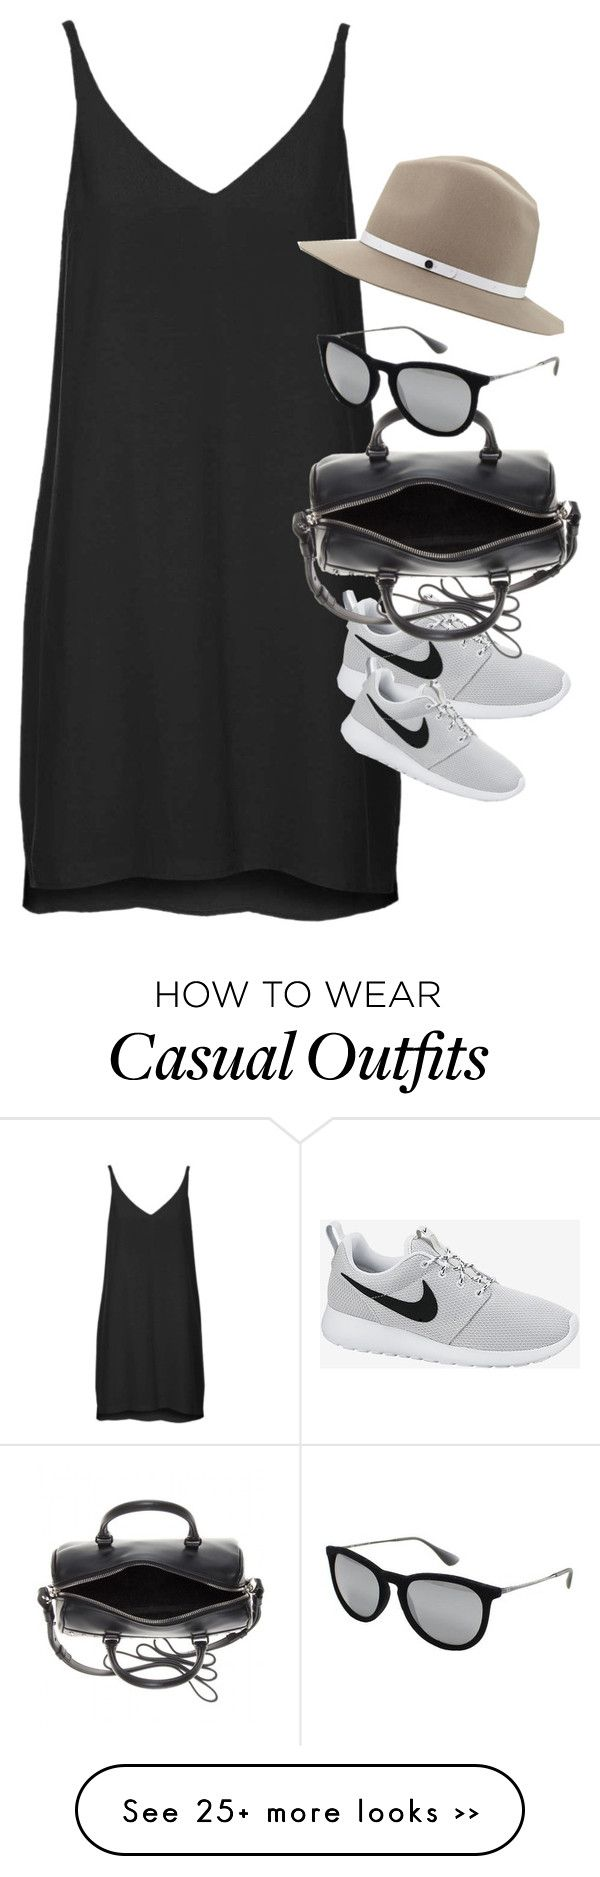 """Inspired outfit for a casual day in summer"" by whathayleywore on Polyvore"